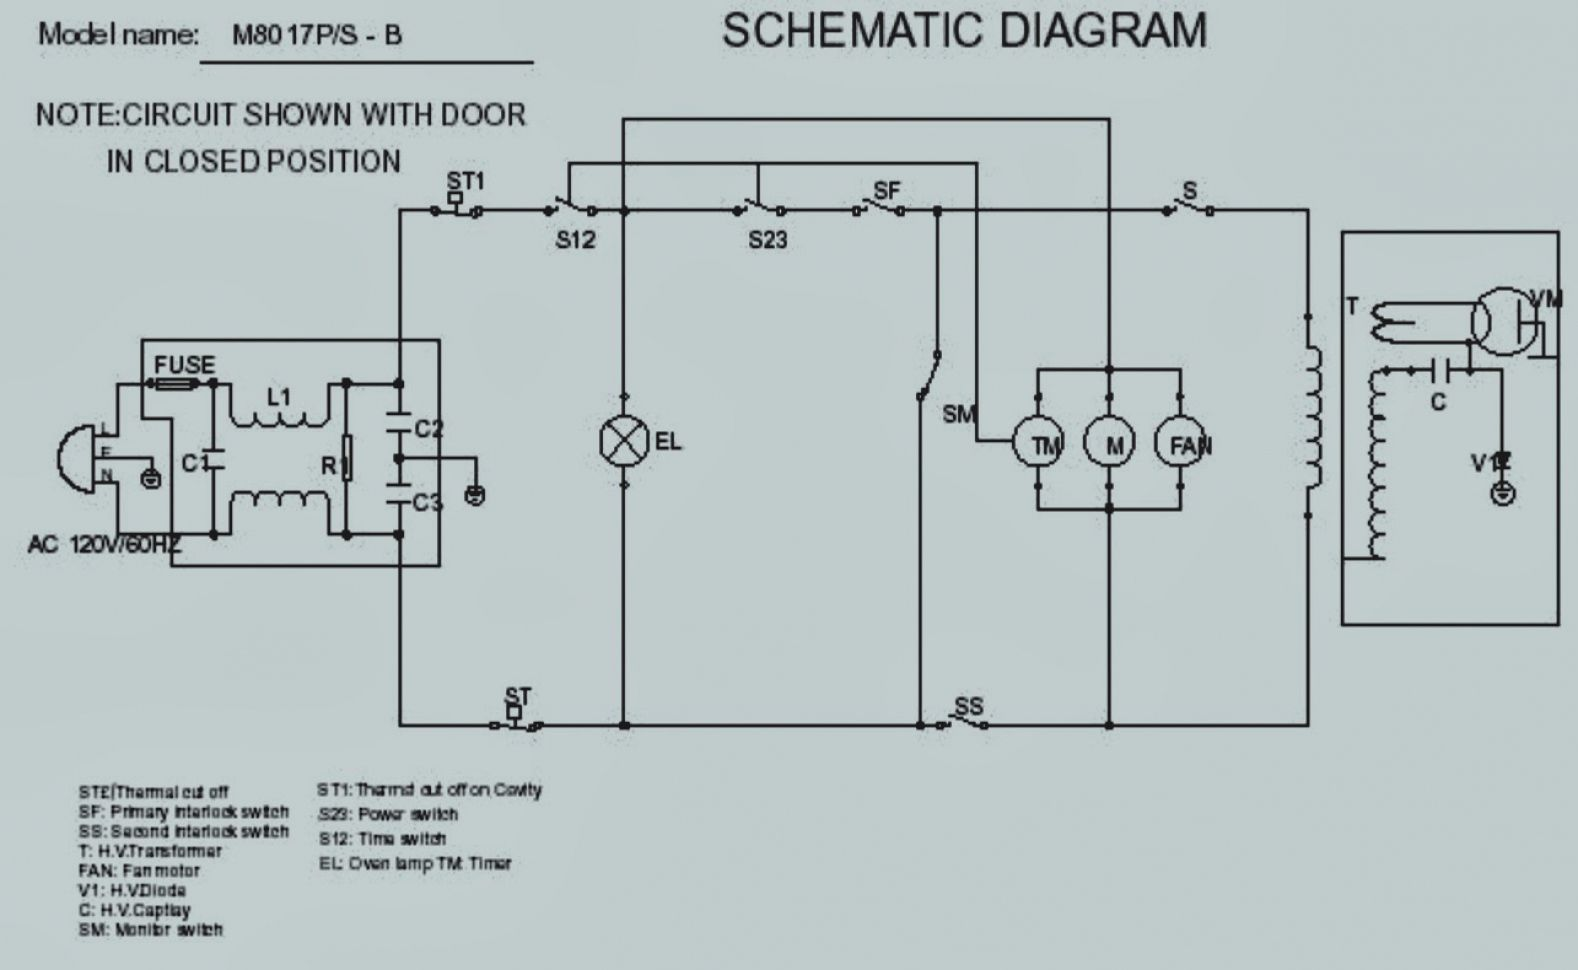 [DIAGRAM_38YU]  Pictures Microwave Oven Wiring Diagram Diagrams Schematics 9 | Circuit  diagram, Microwave oven, Lg microwave | Wiring Diagram Or Schematic |  | Pinterest